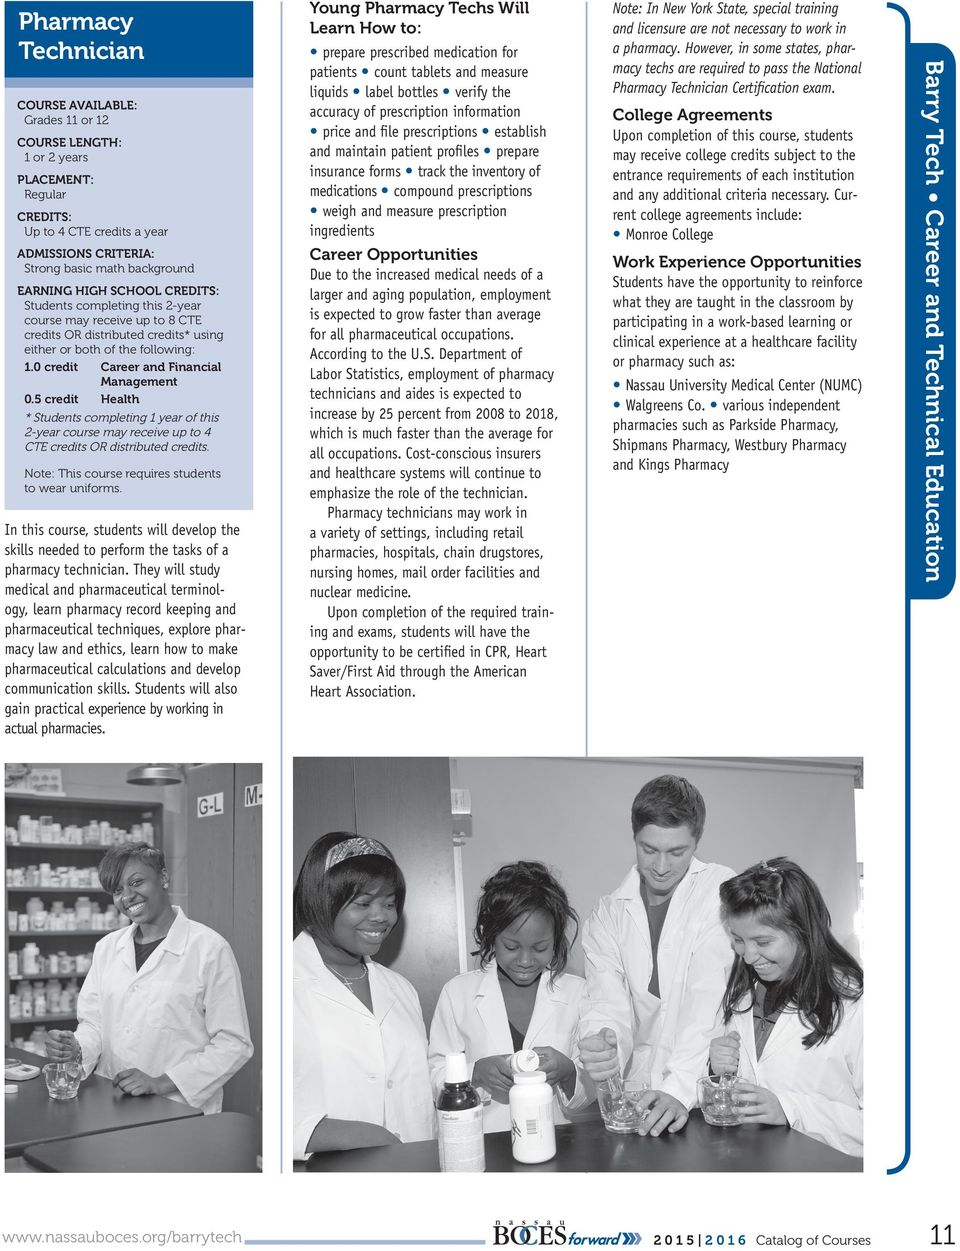 In this course, students will develop the skills needed to perform the tasks of a pharmacy technician.